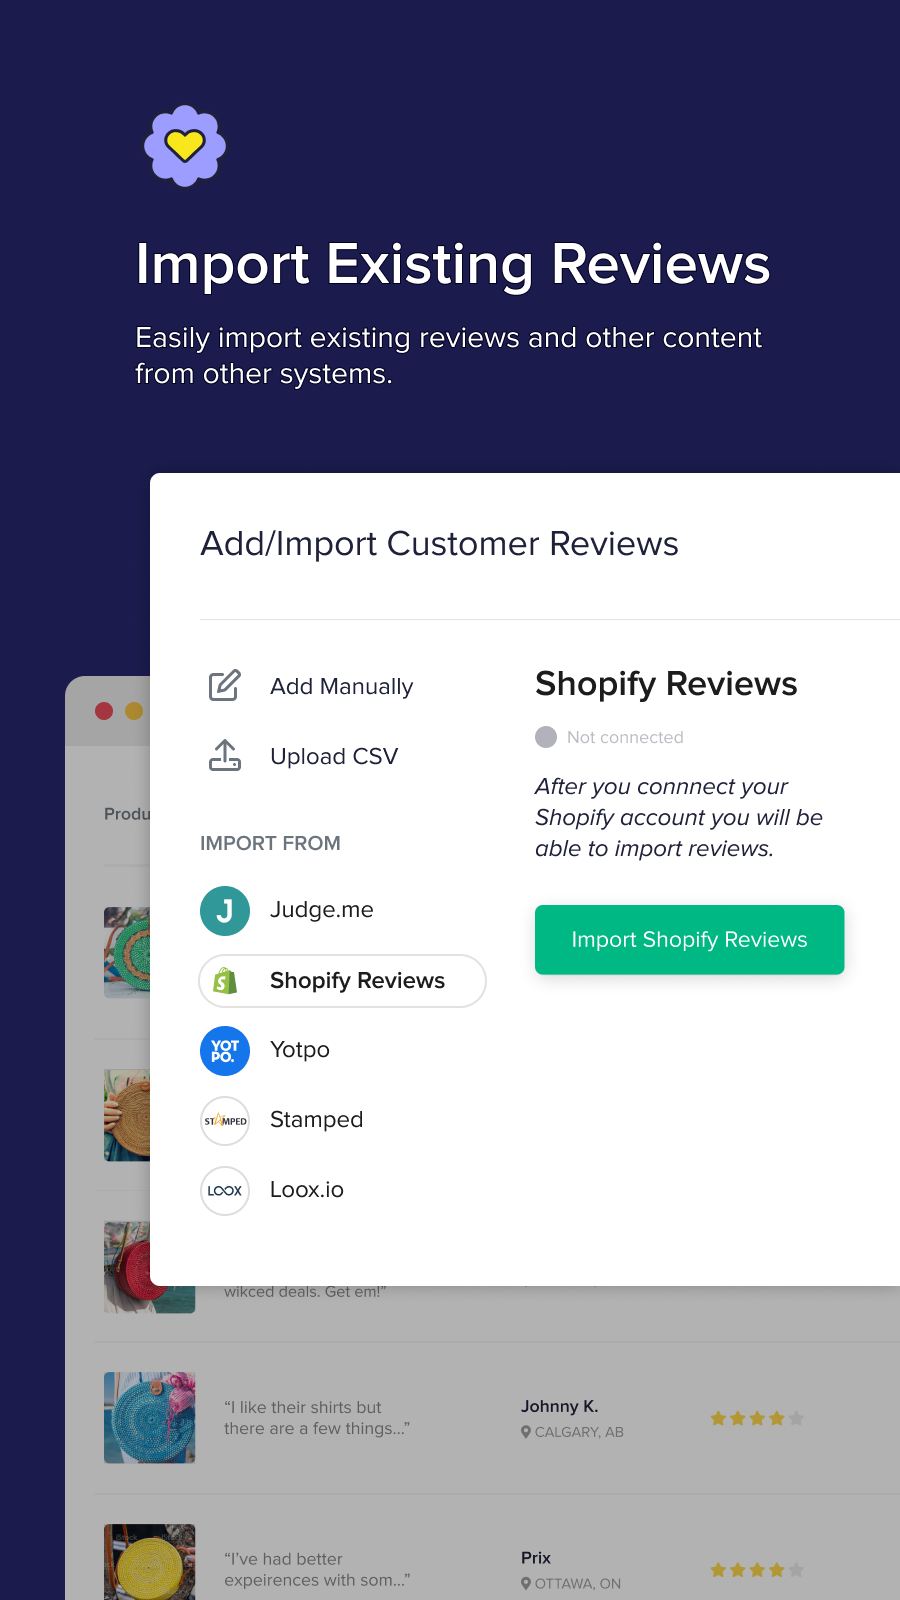 Import existing reviews in clicks to get a head-start.